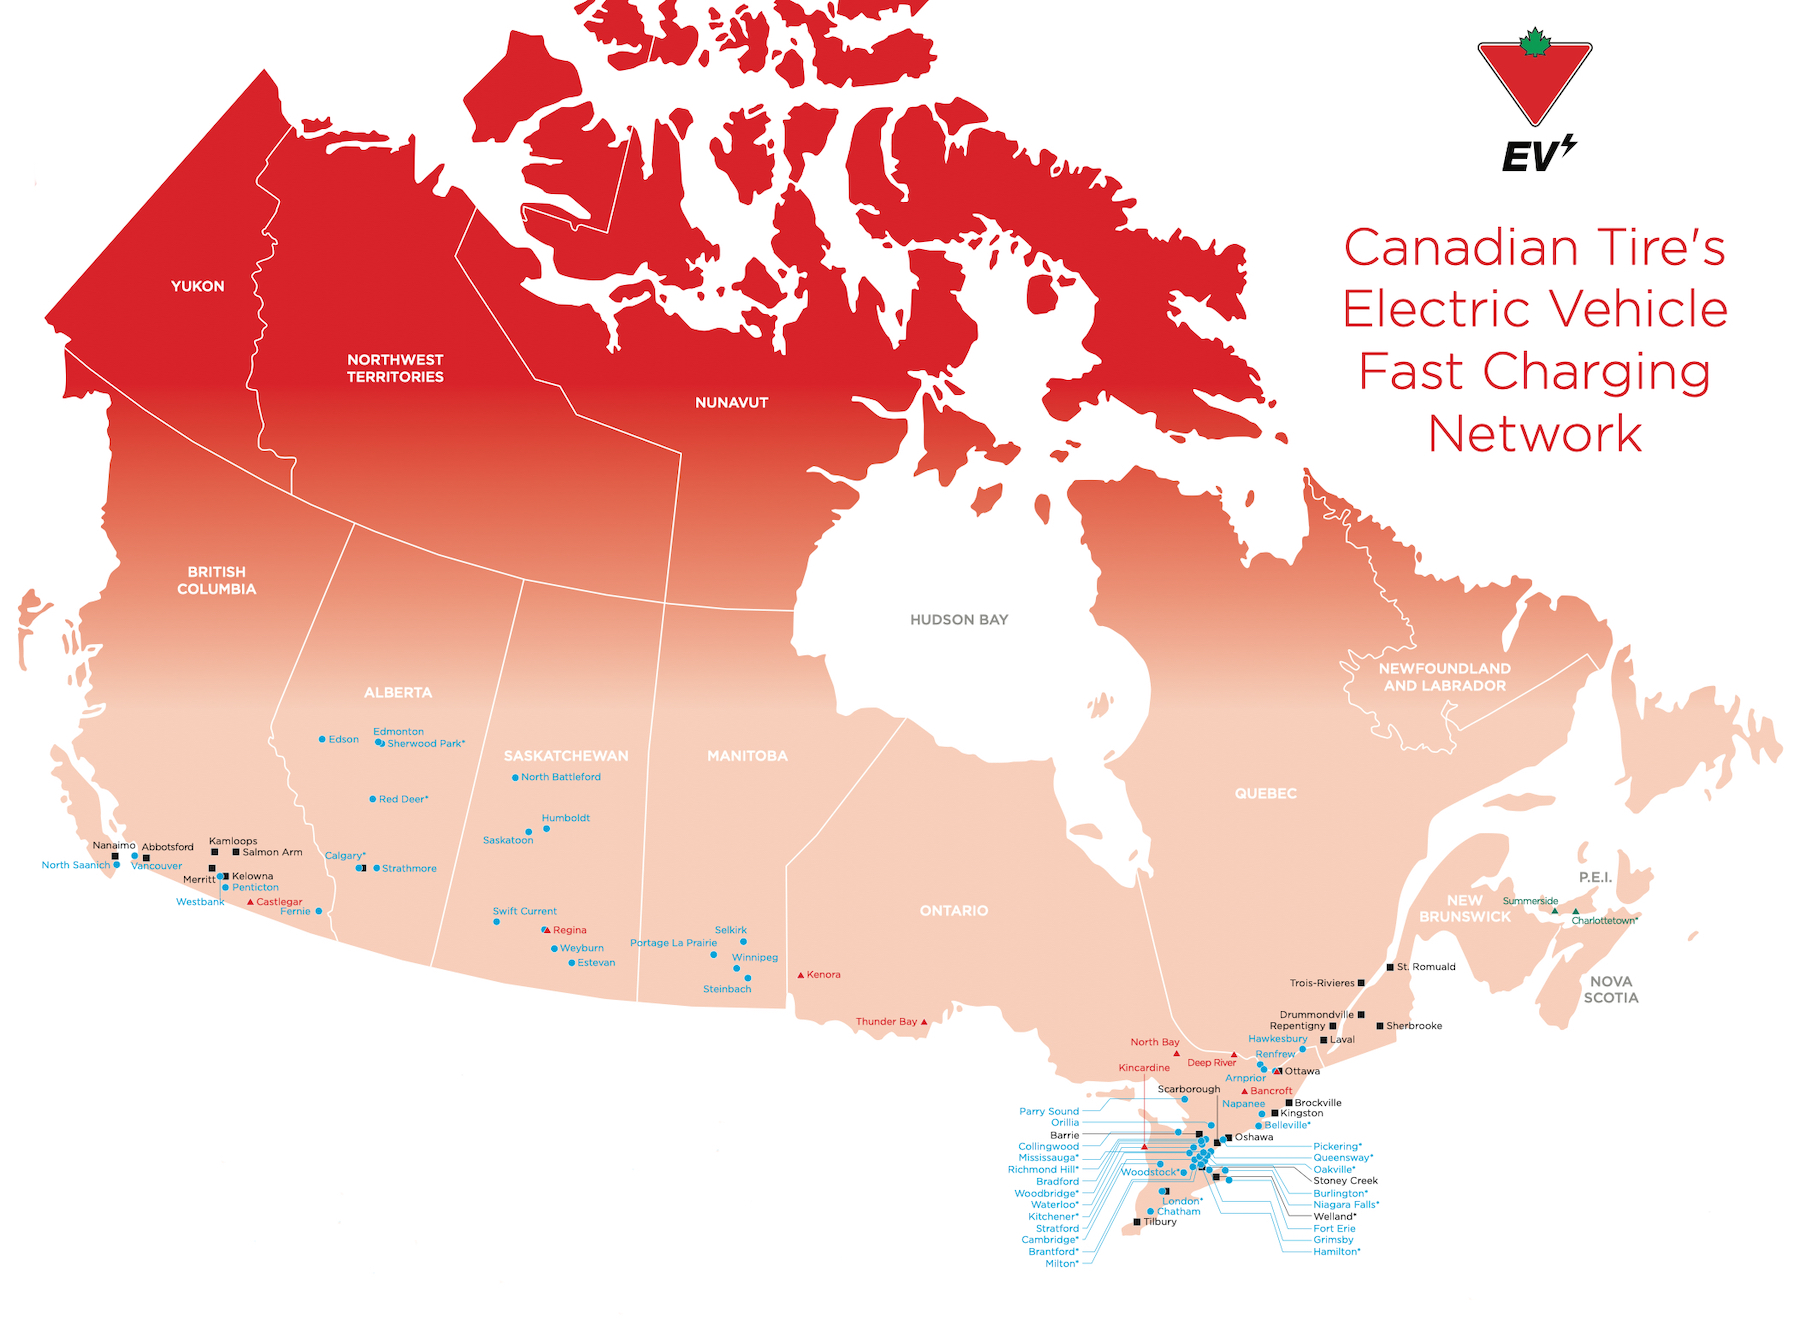 Canadian Tire EV network map